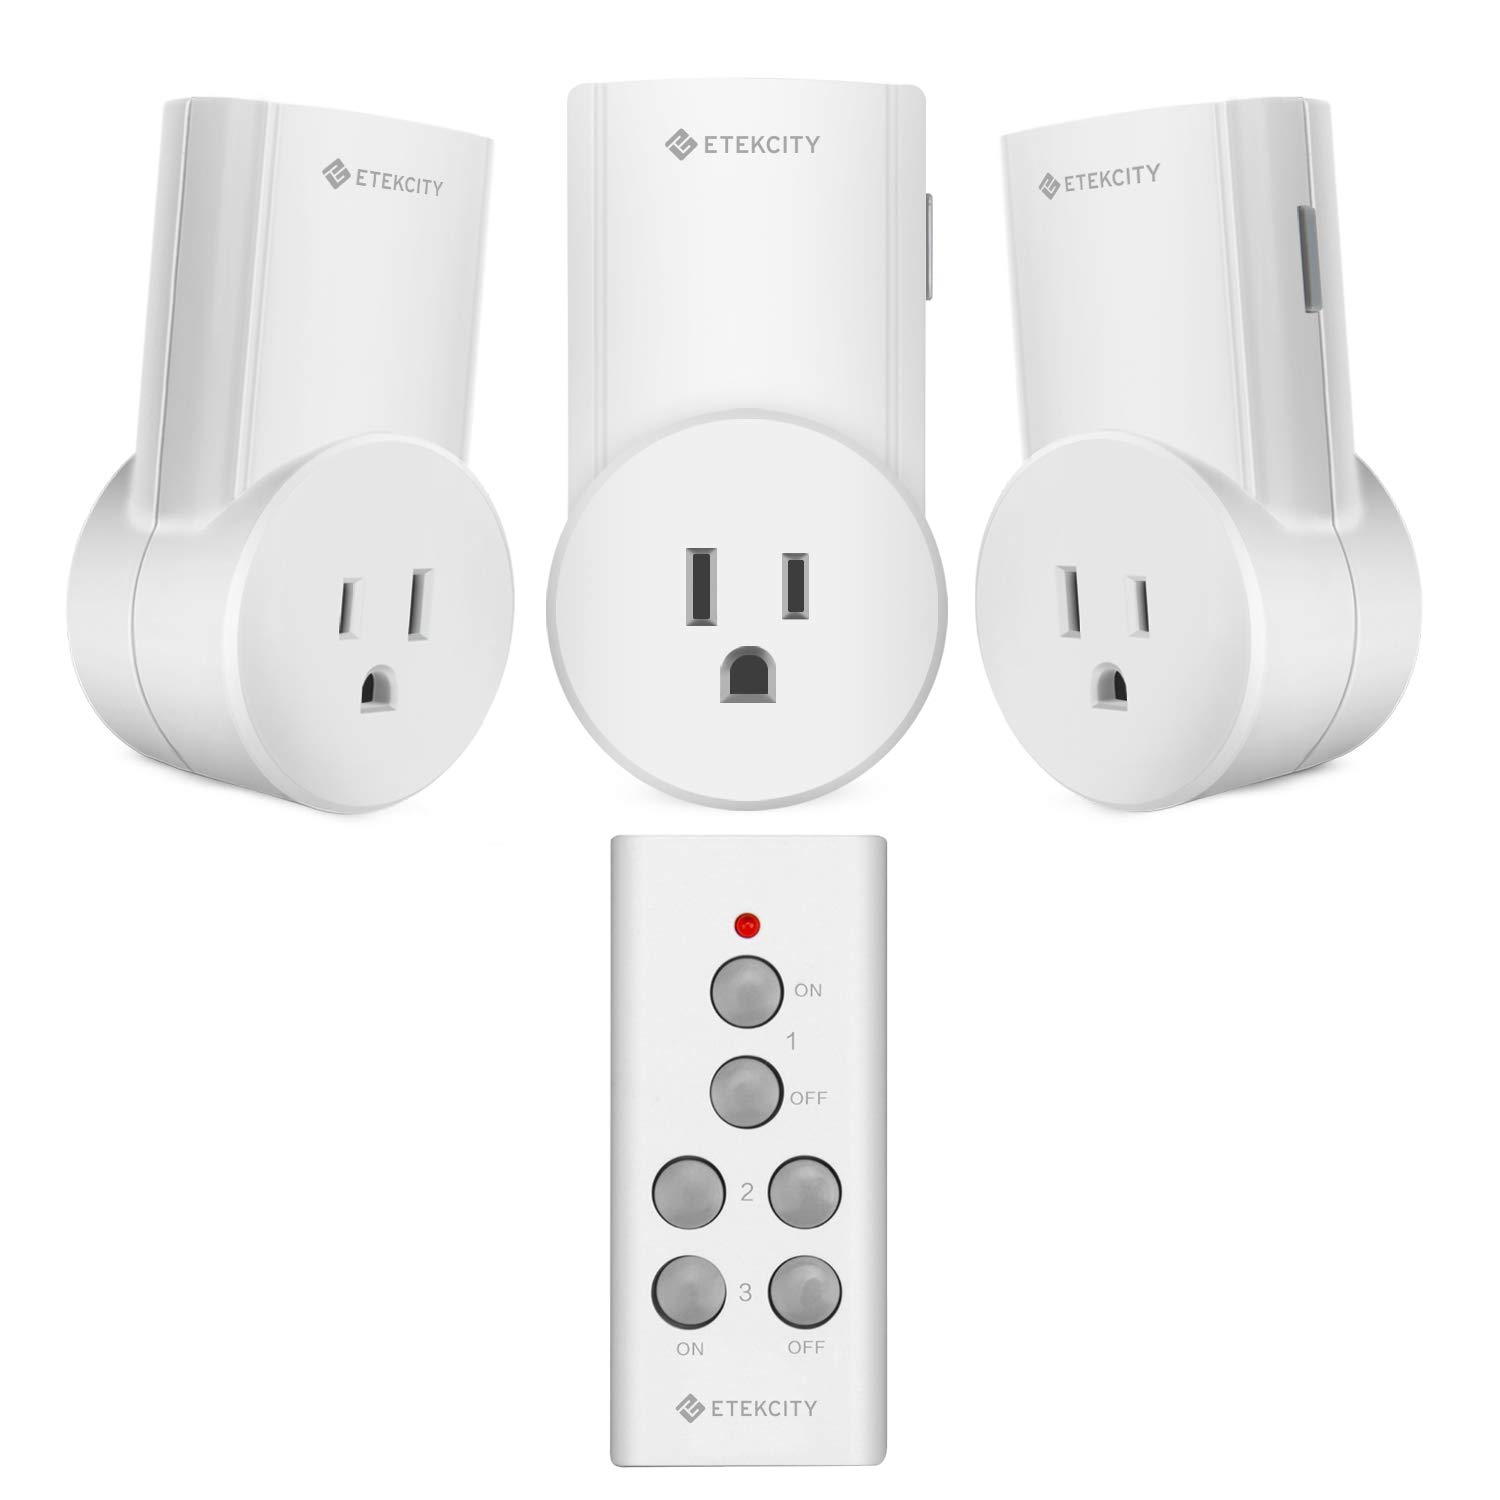 Etekcity Remote Control Outlet Wireless Light Switch For Household Adding A New Receptacle At Appliances Unlimited Connections Fcc Etl Listed White 3rx 1tx Electric Plugs